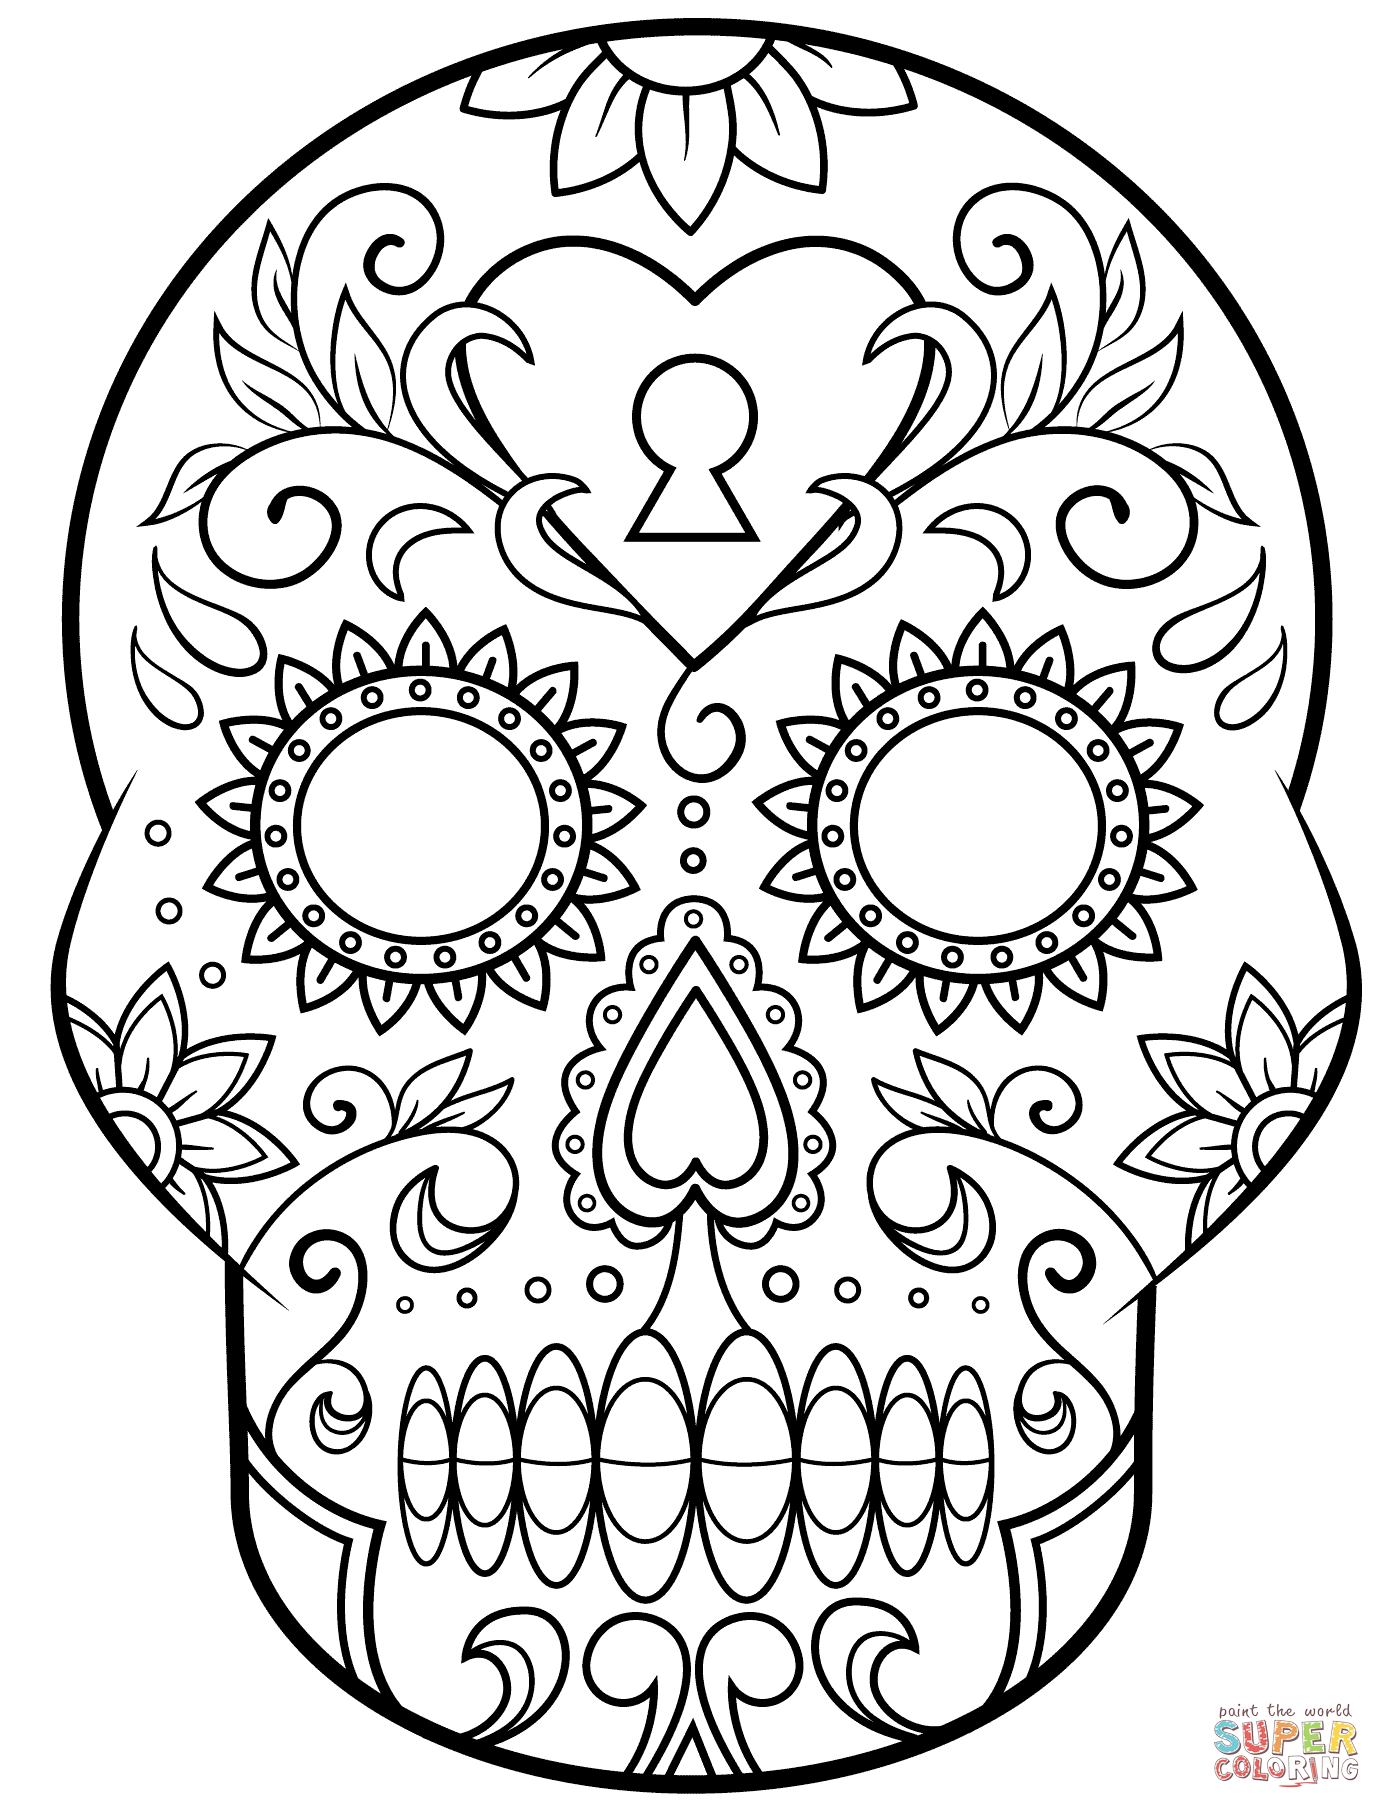 free printable day of the dead coloring pages Day of the Dead Sugar Skull coloring page | Free Printable  free printable day of the dead coloring pages